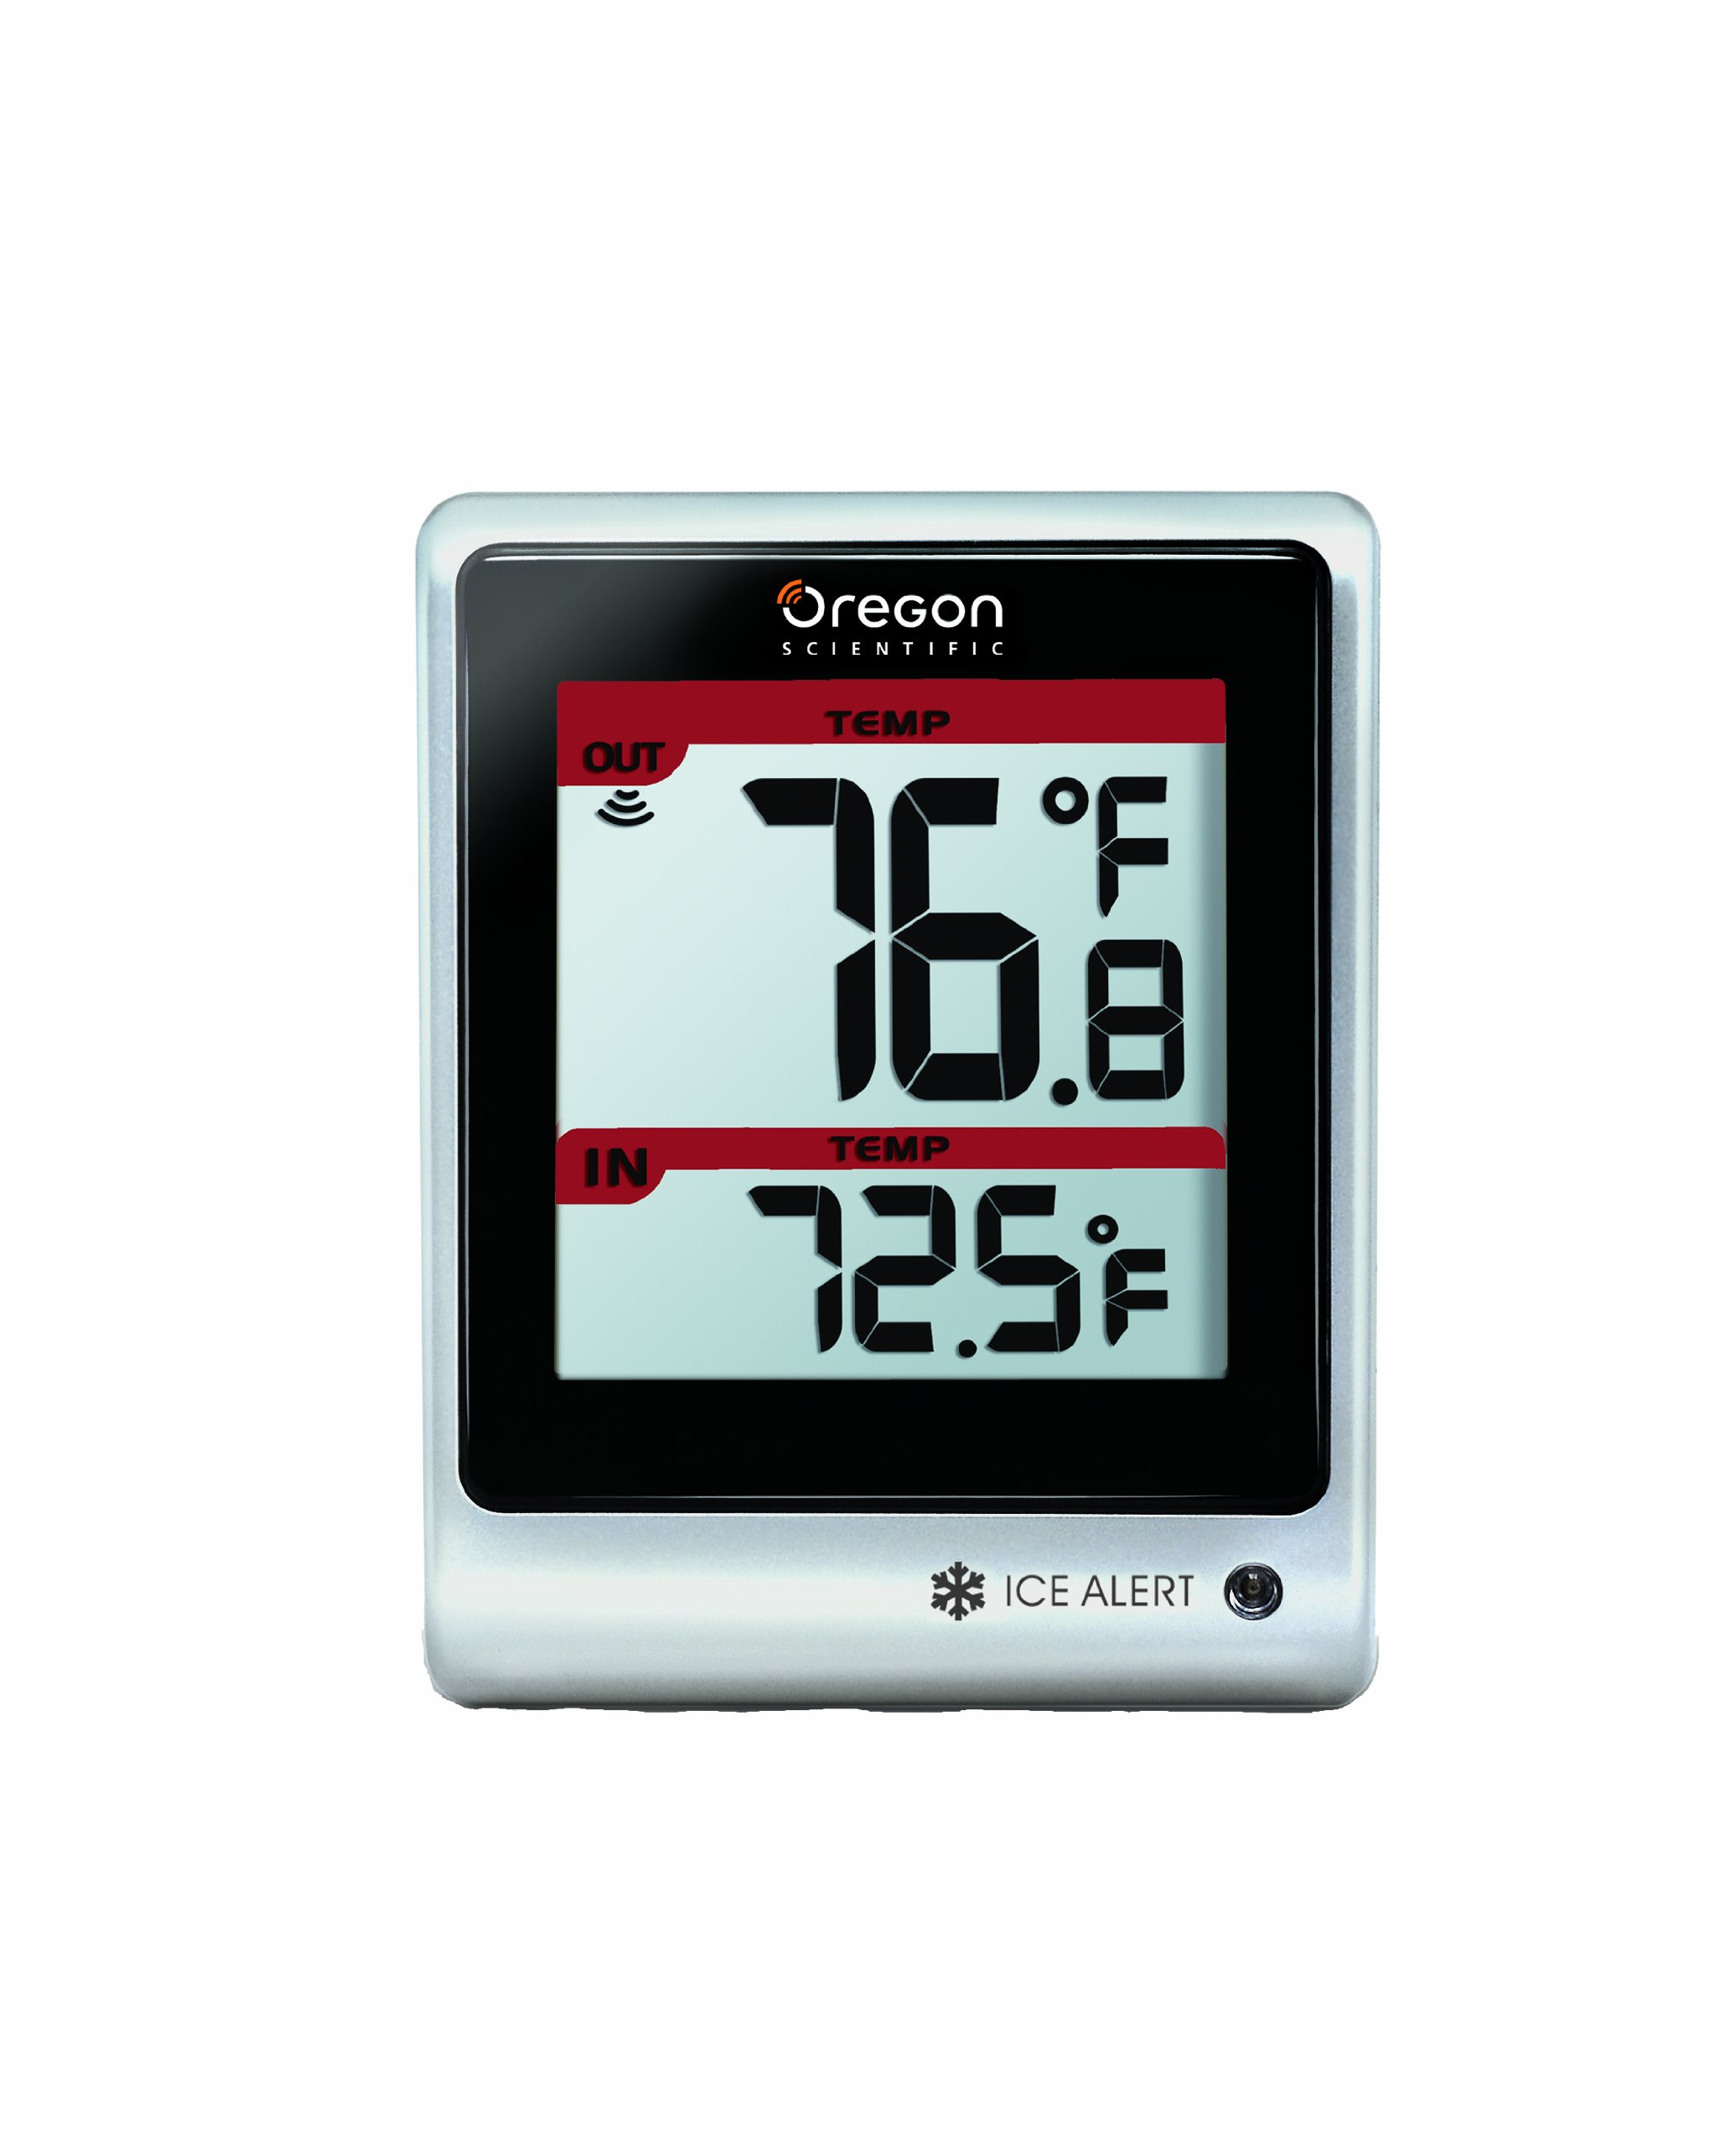 Oregon Scientific EMR201 Indoor/Outdoor Thermometer with Wireless Remote and Blinking LED Ice Alert